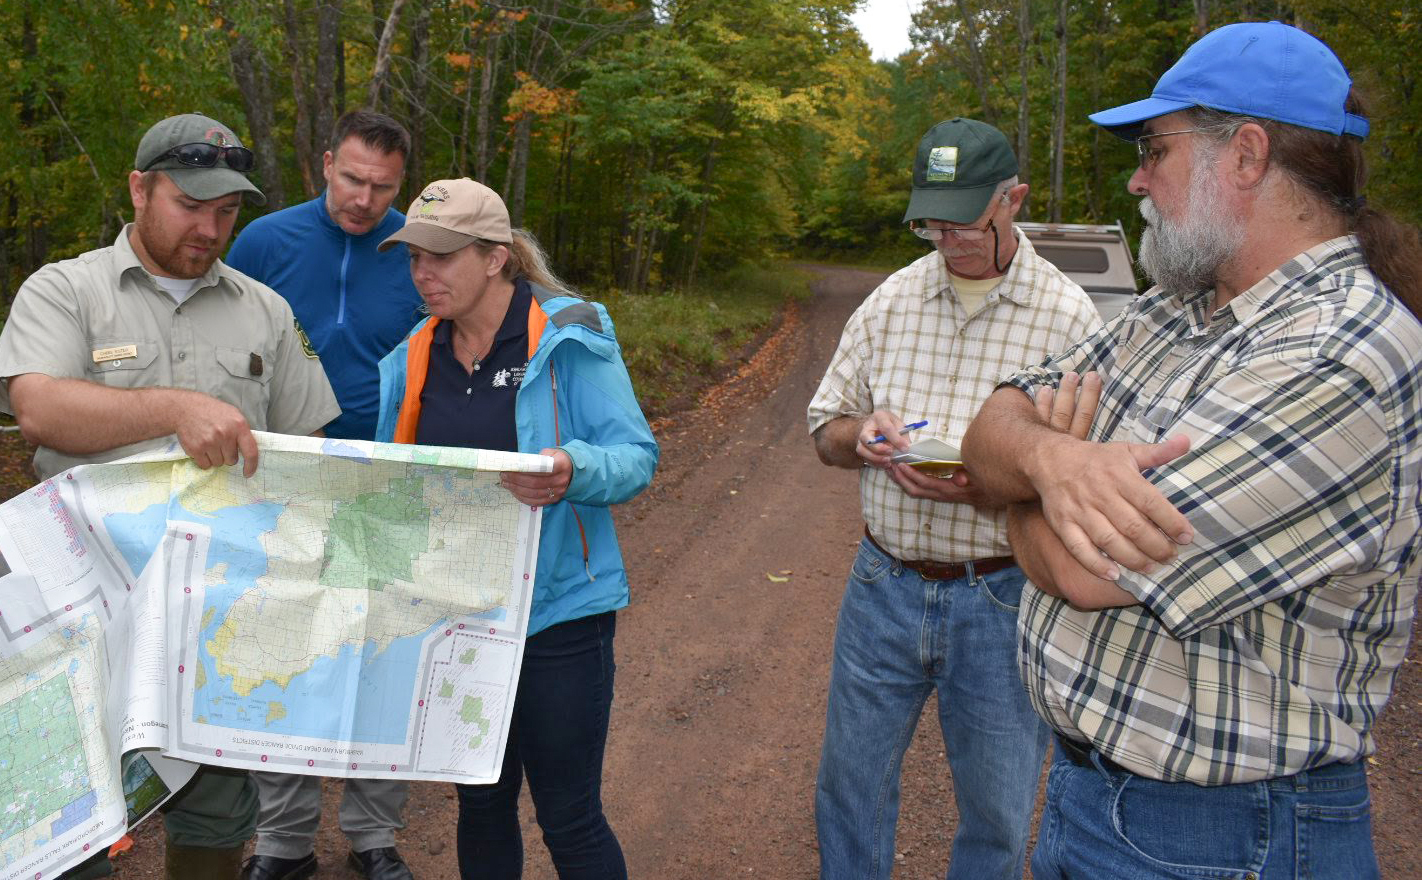 People gathered around a map in a natural area, with WWA's Tracy Hames in the foreground.